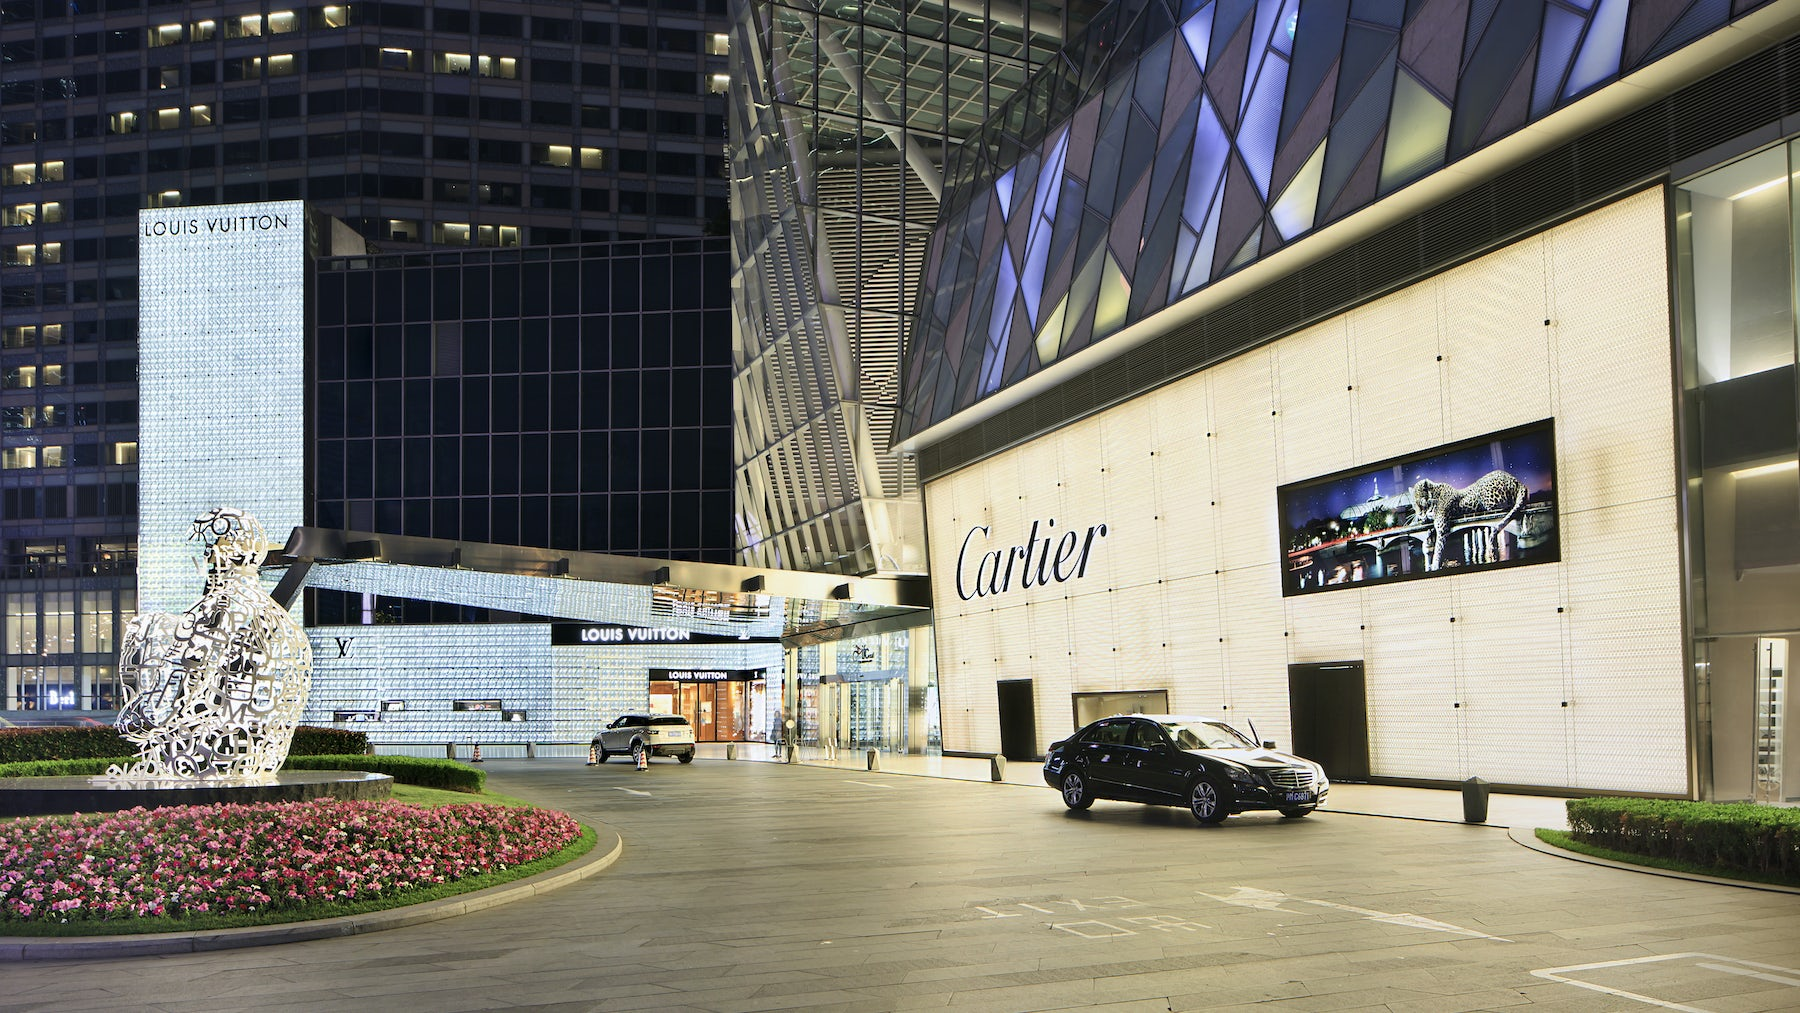 The Louis Vuitton and Cartier stores in Shanghai, China | Source: Shutterstock